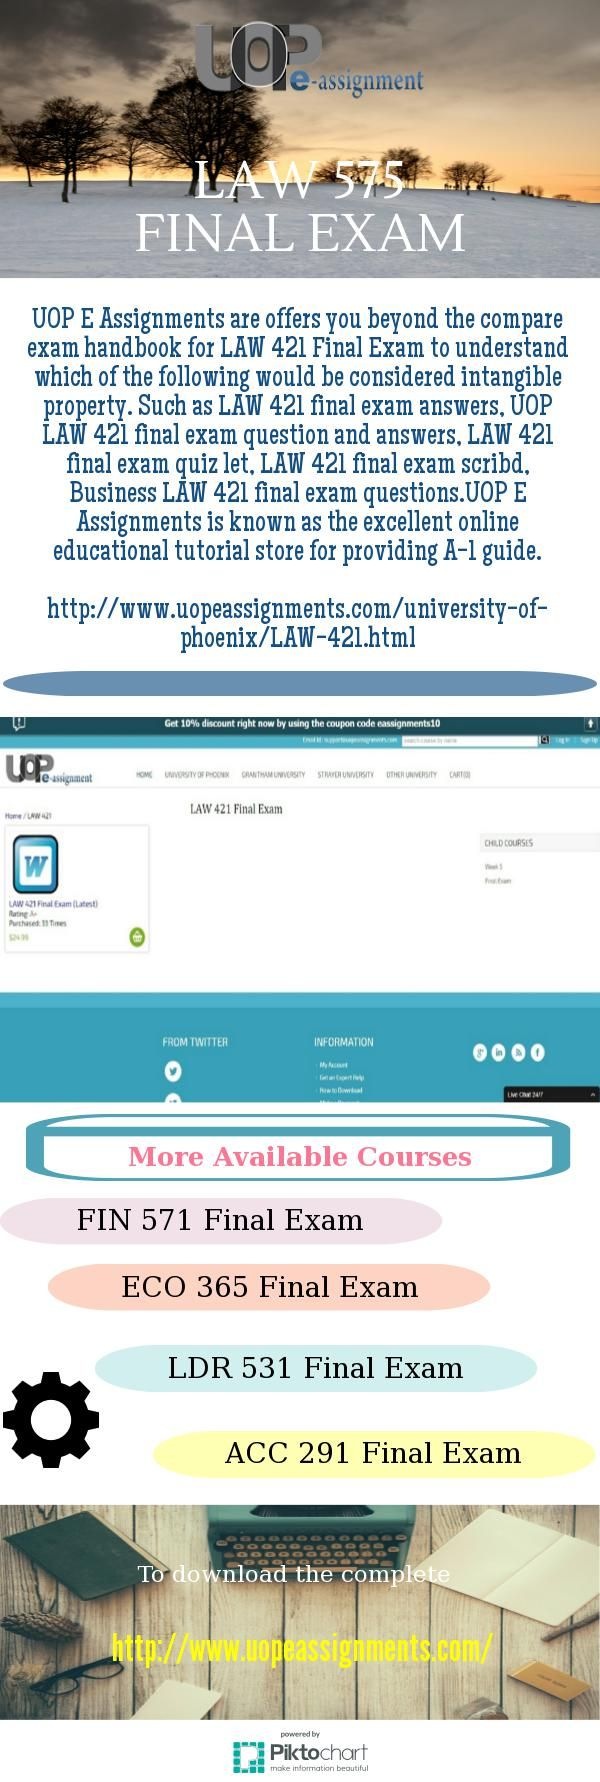 UOP E Assignments are offers you beyond the compare exam handbook for LAW 421 Final Exam to understand which of the following would be considered intangible property. Such as LAW 421 final exam question and answers, LAW 421 final exam quiz let, LAW 421 final exam scribd, Business LAW 421 final exam questions. UOP E Assignments is known as the excellent online educational tutorial store for providing A-1 guide. http://www.uopeassignments.com/university-of-phoenix/LAW-421.html